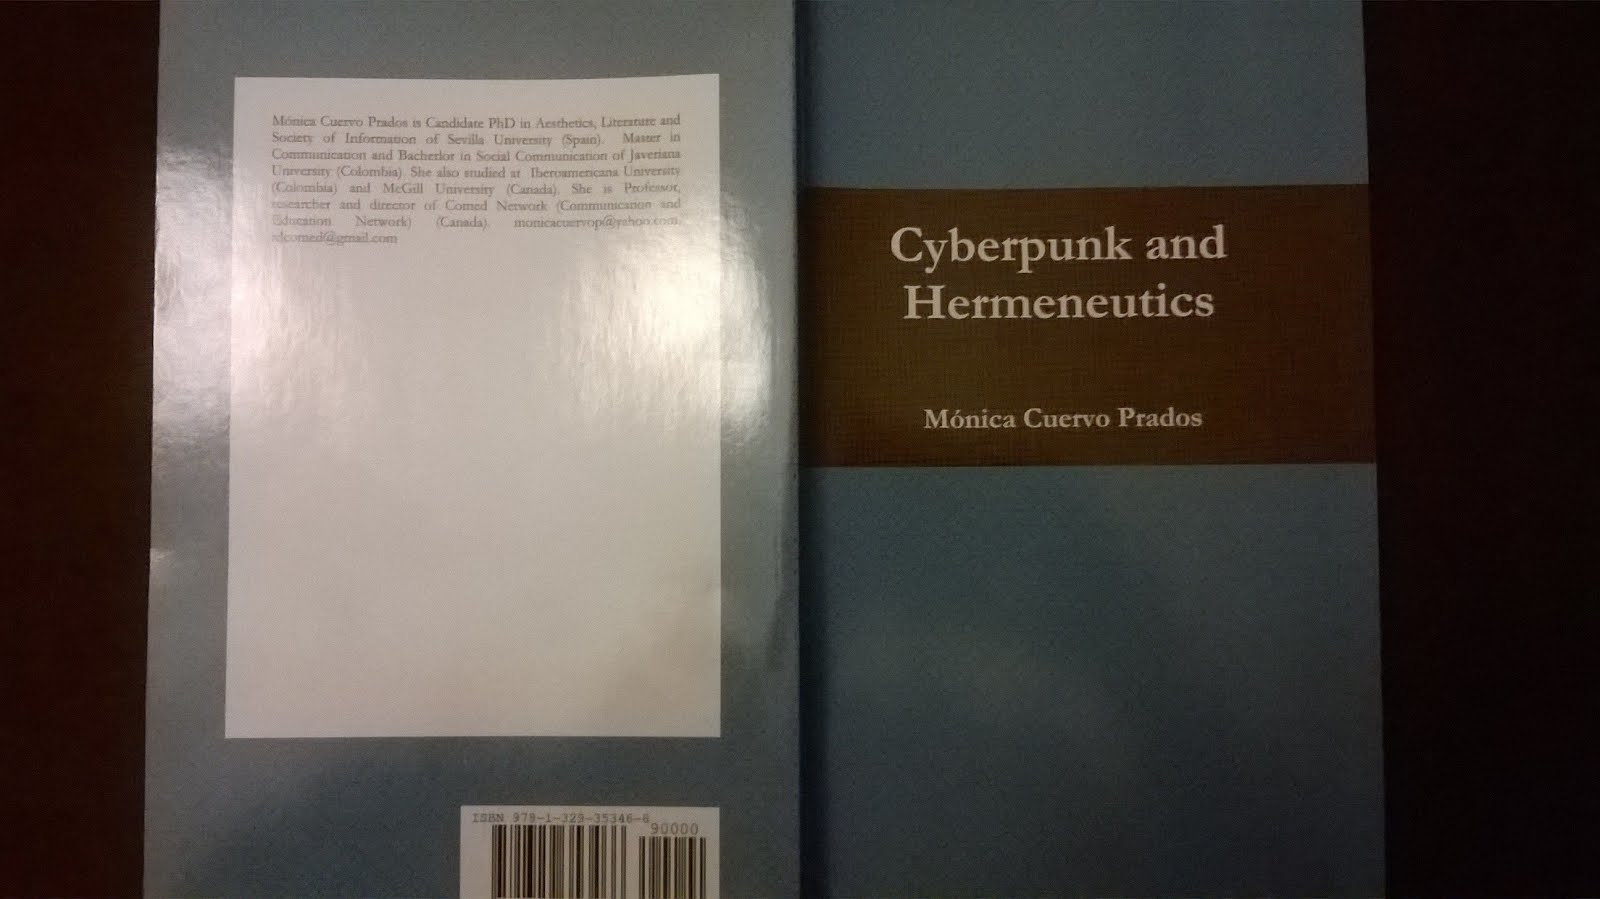 Cyberpunk and Hermeneutics 2015